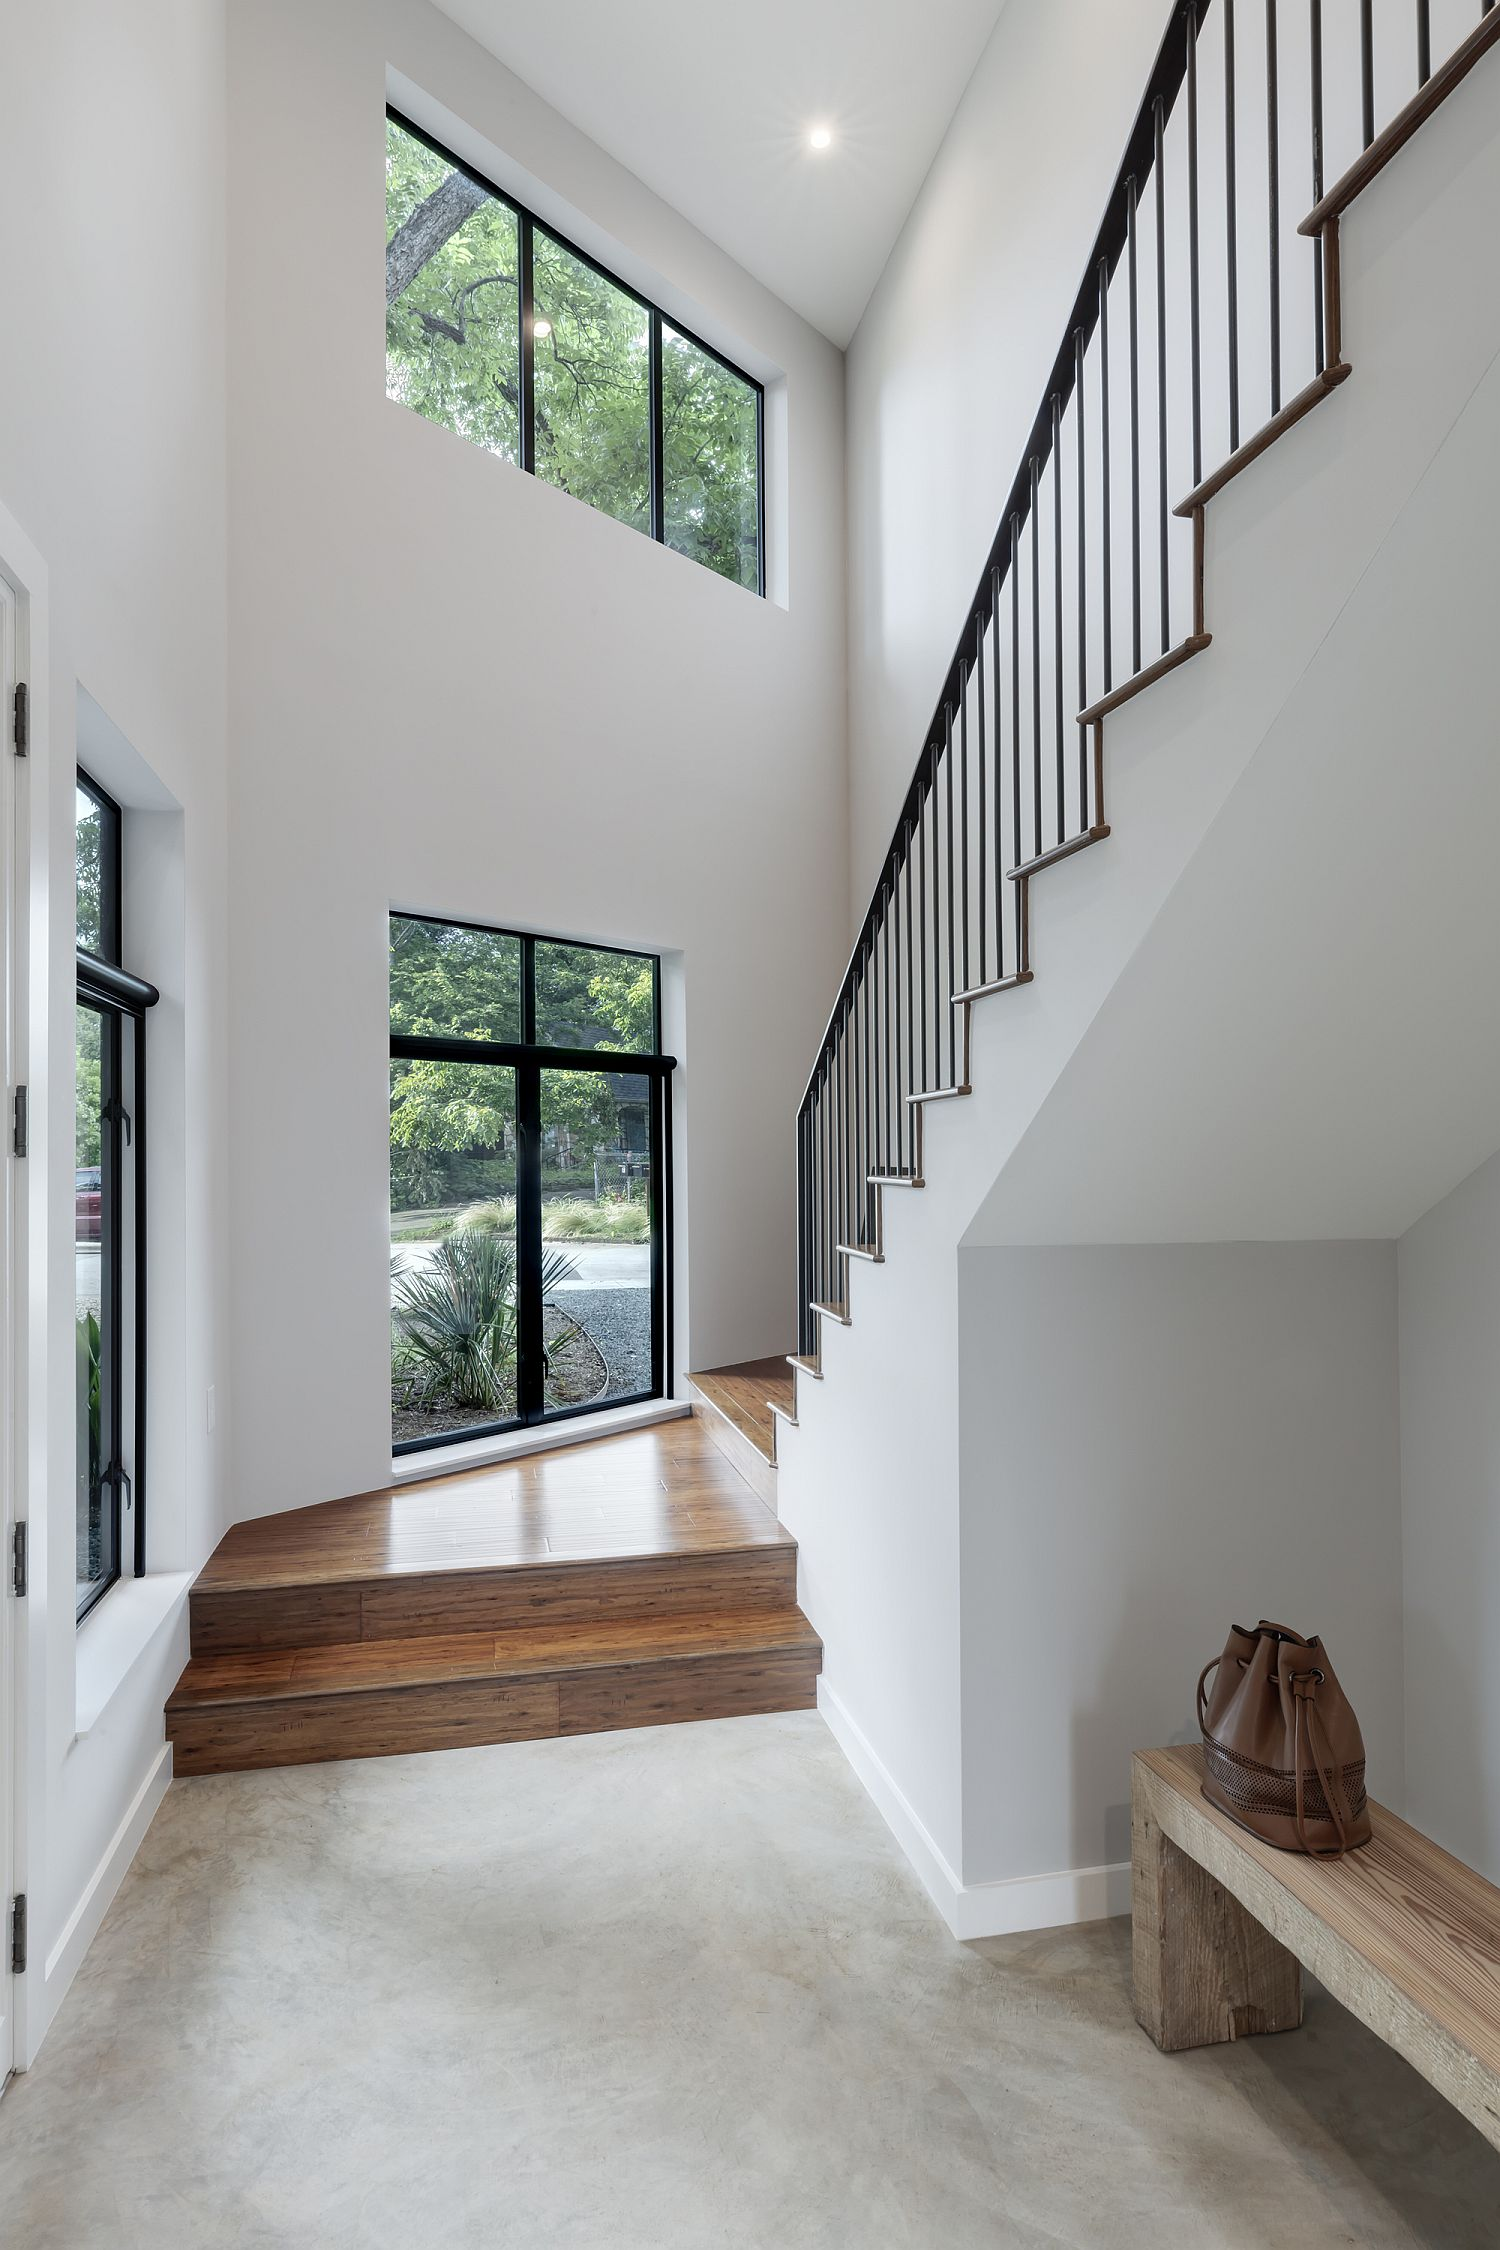 Entry room of the Hewn House in white